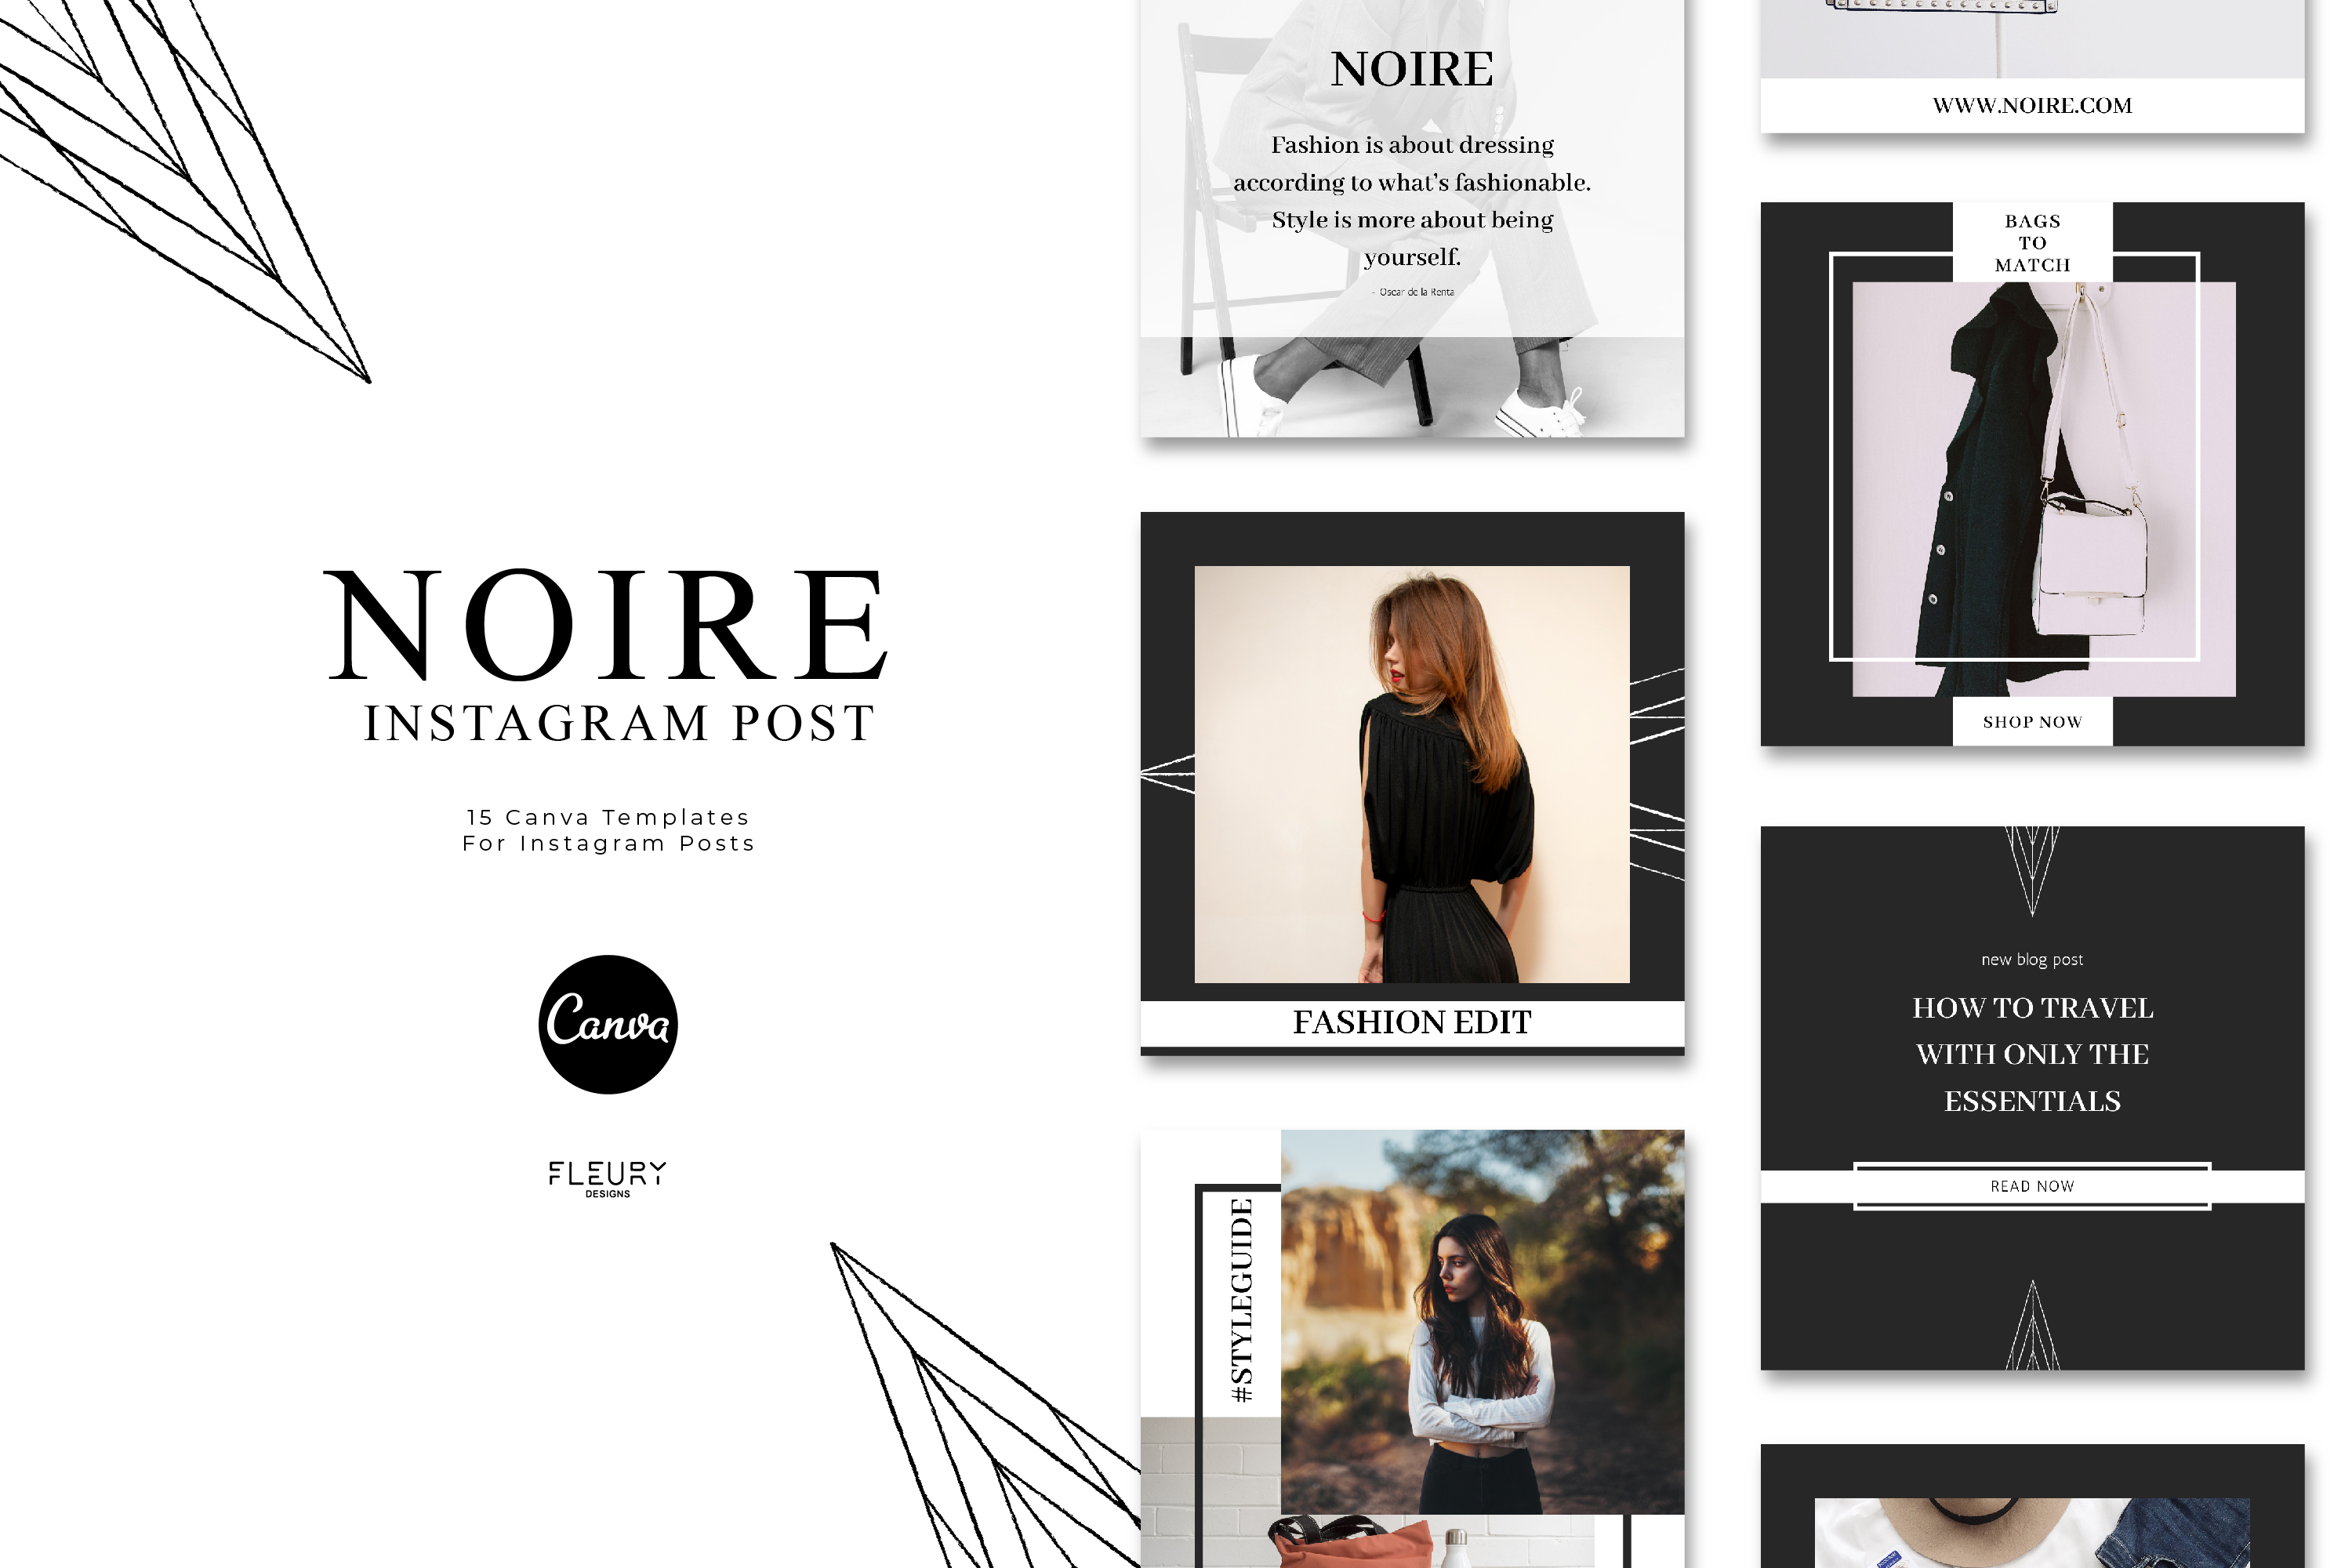 Instagram Posts Canva Template - Noire example image 1